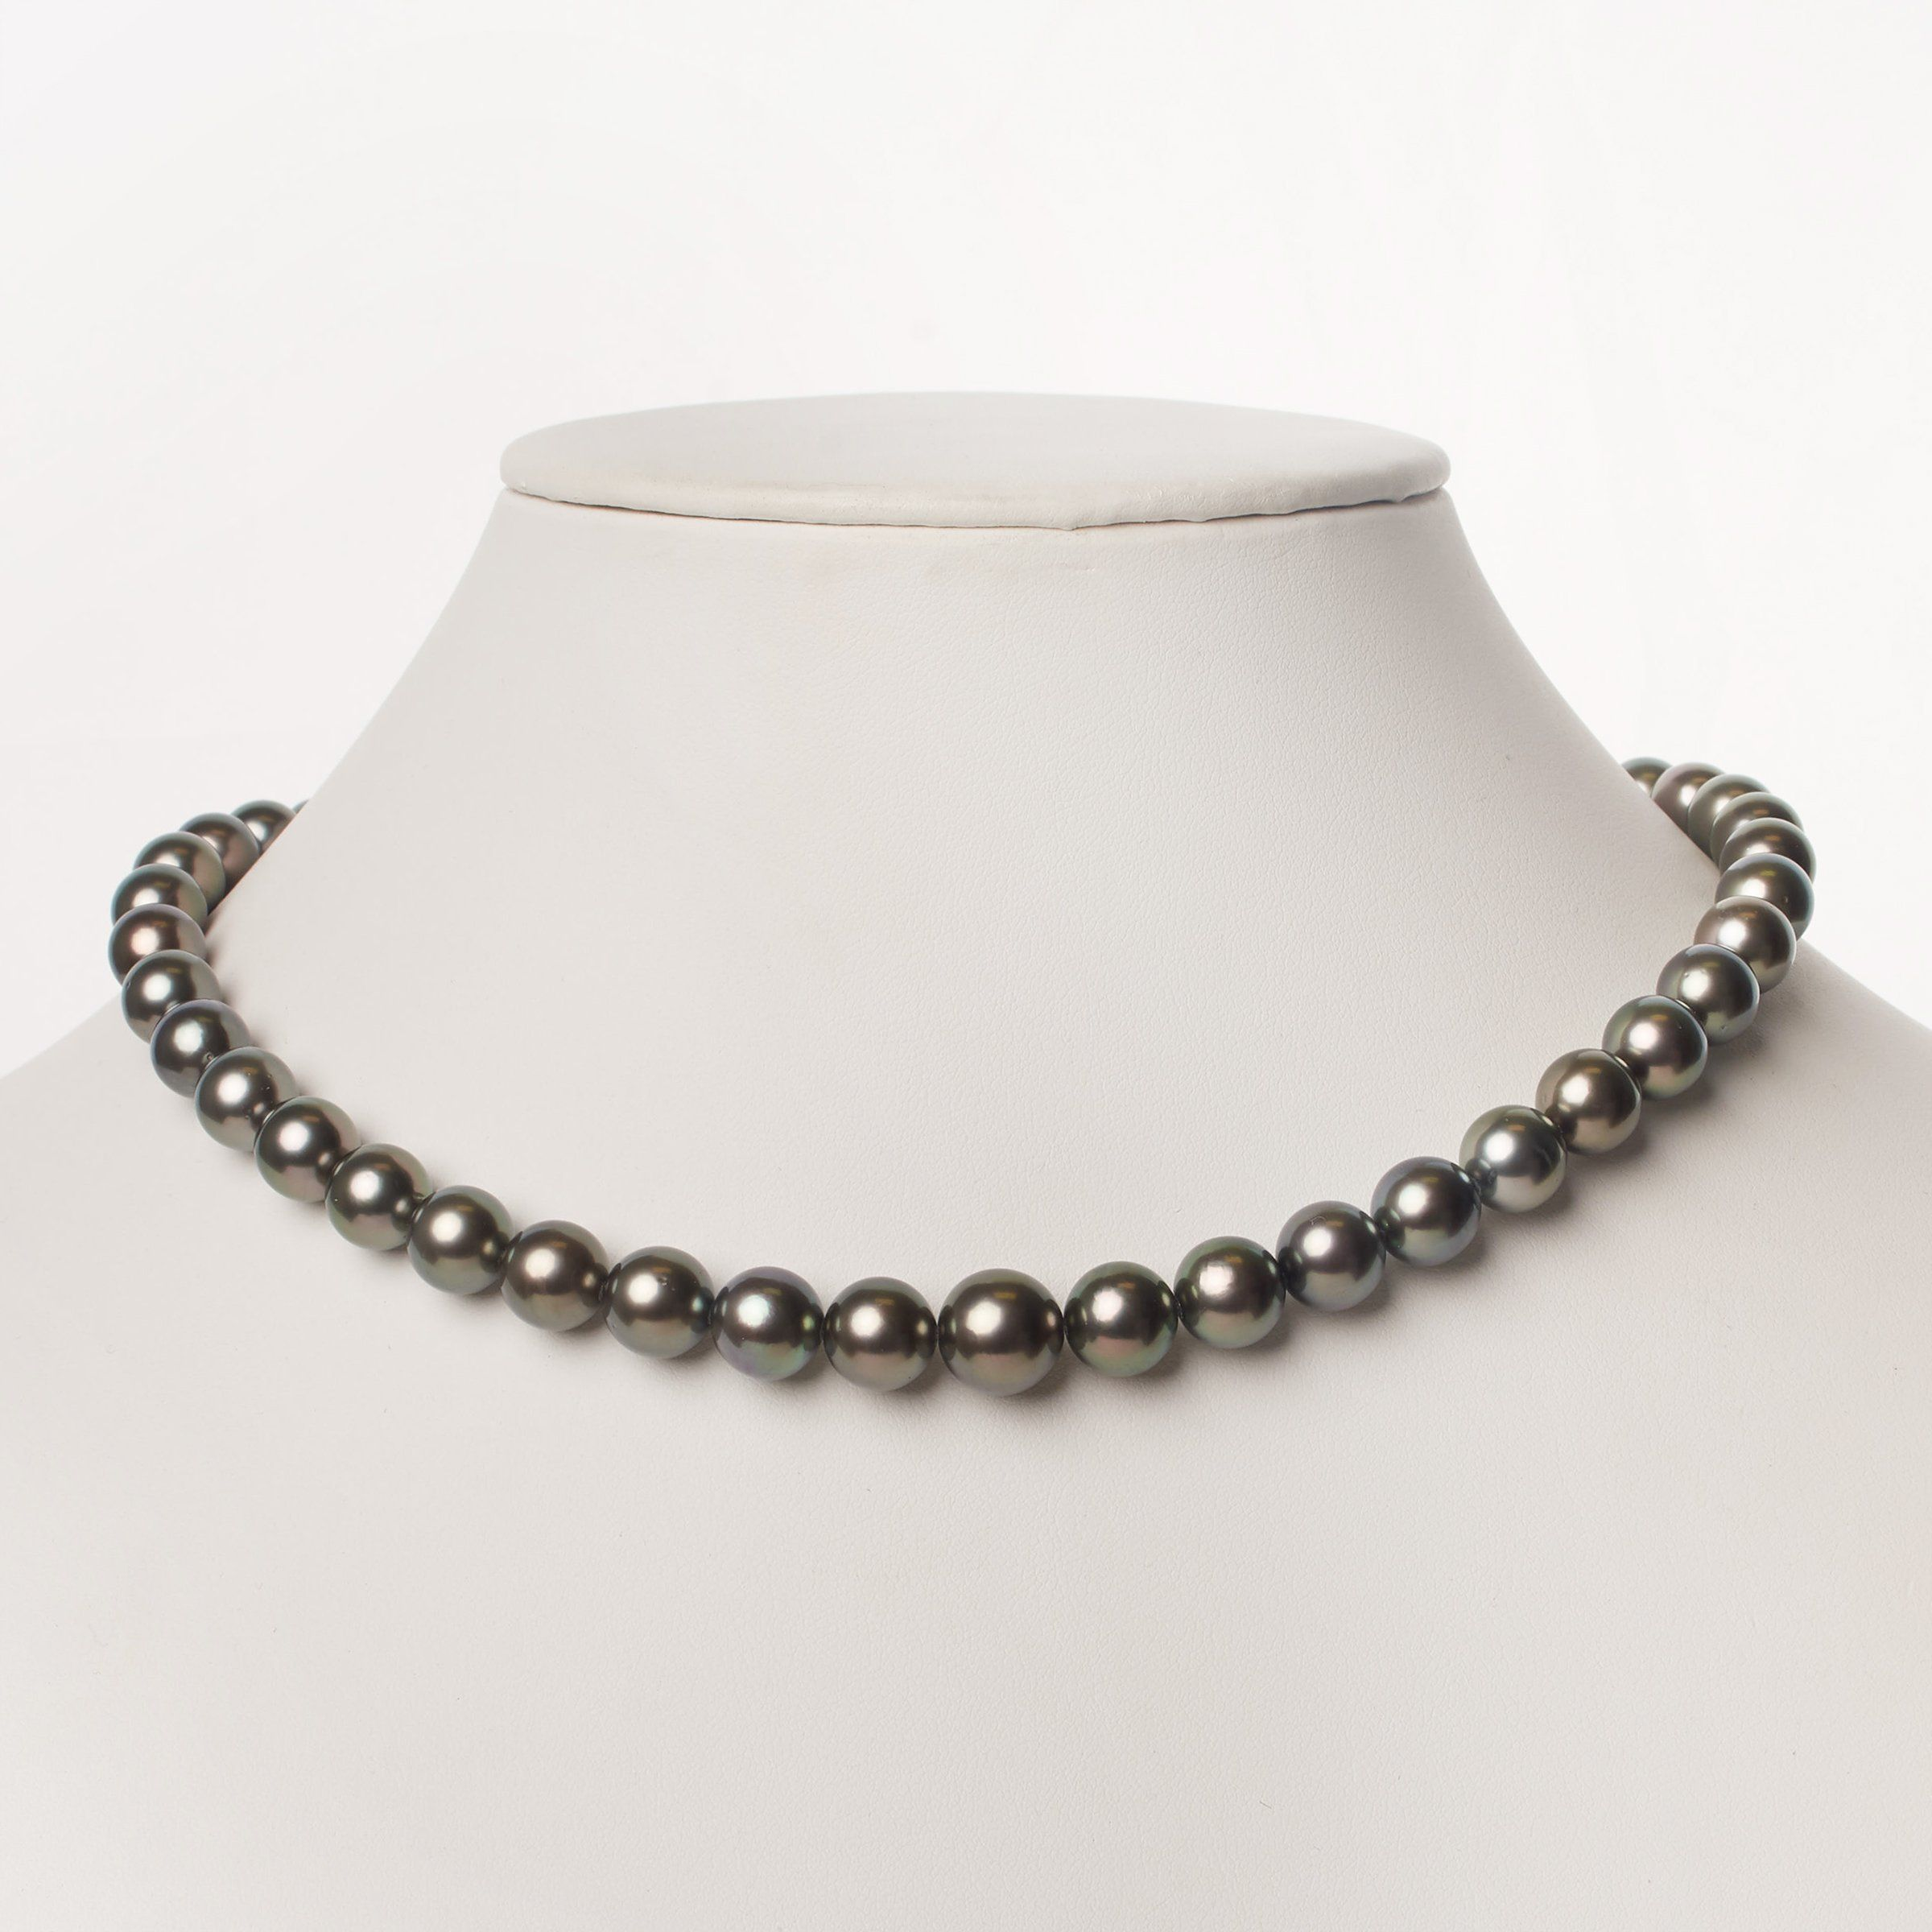 10.0-10.9 mm AA+/AAA Tahitian Round Pearl Necklace